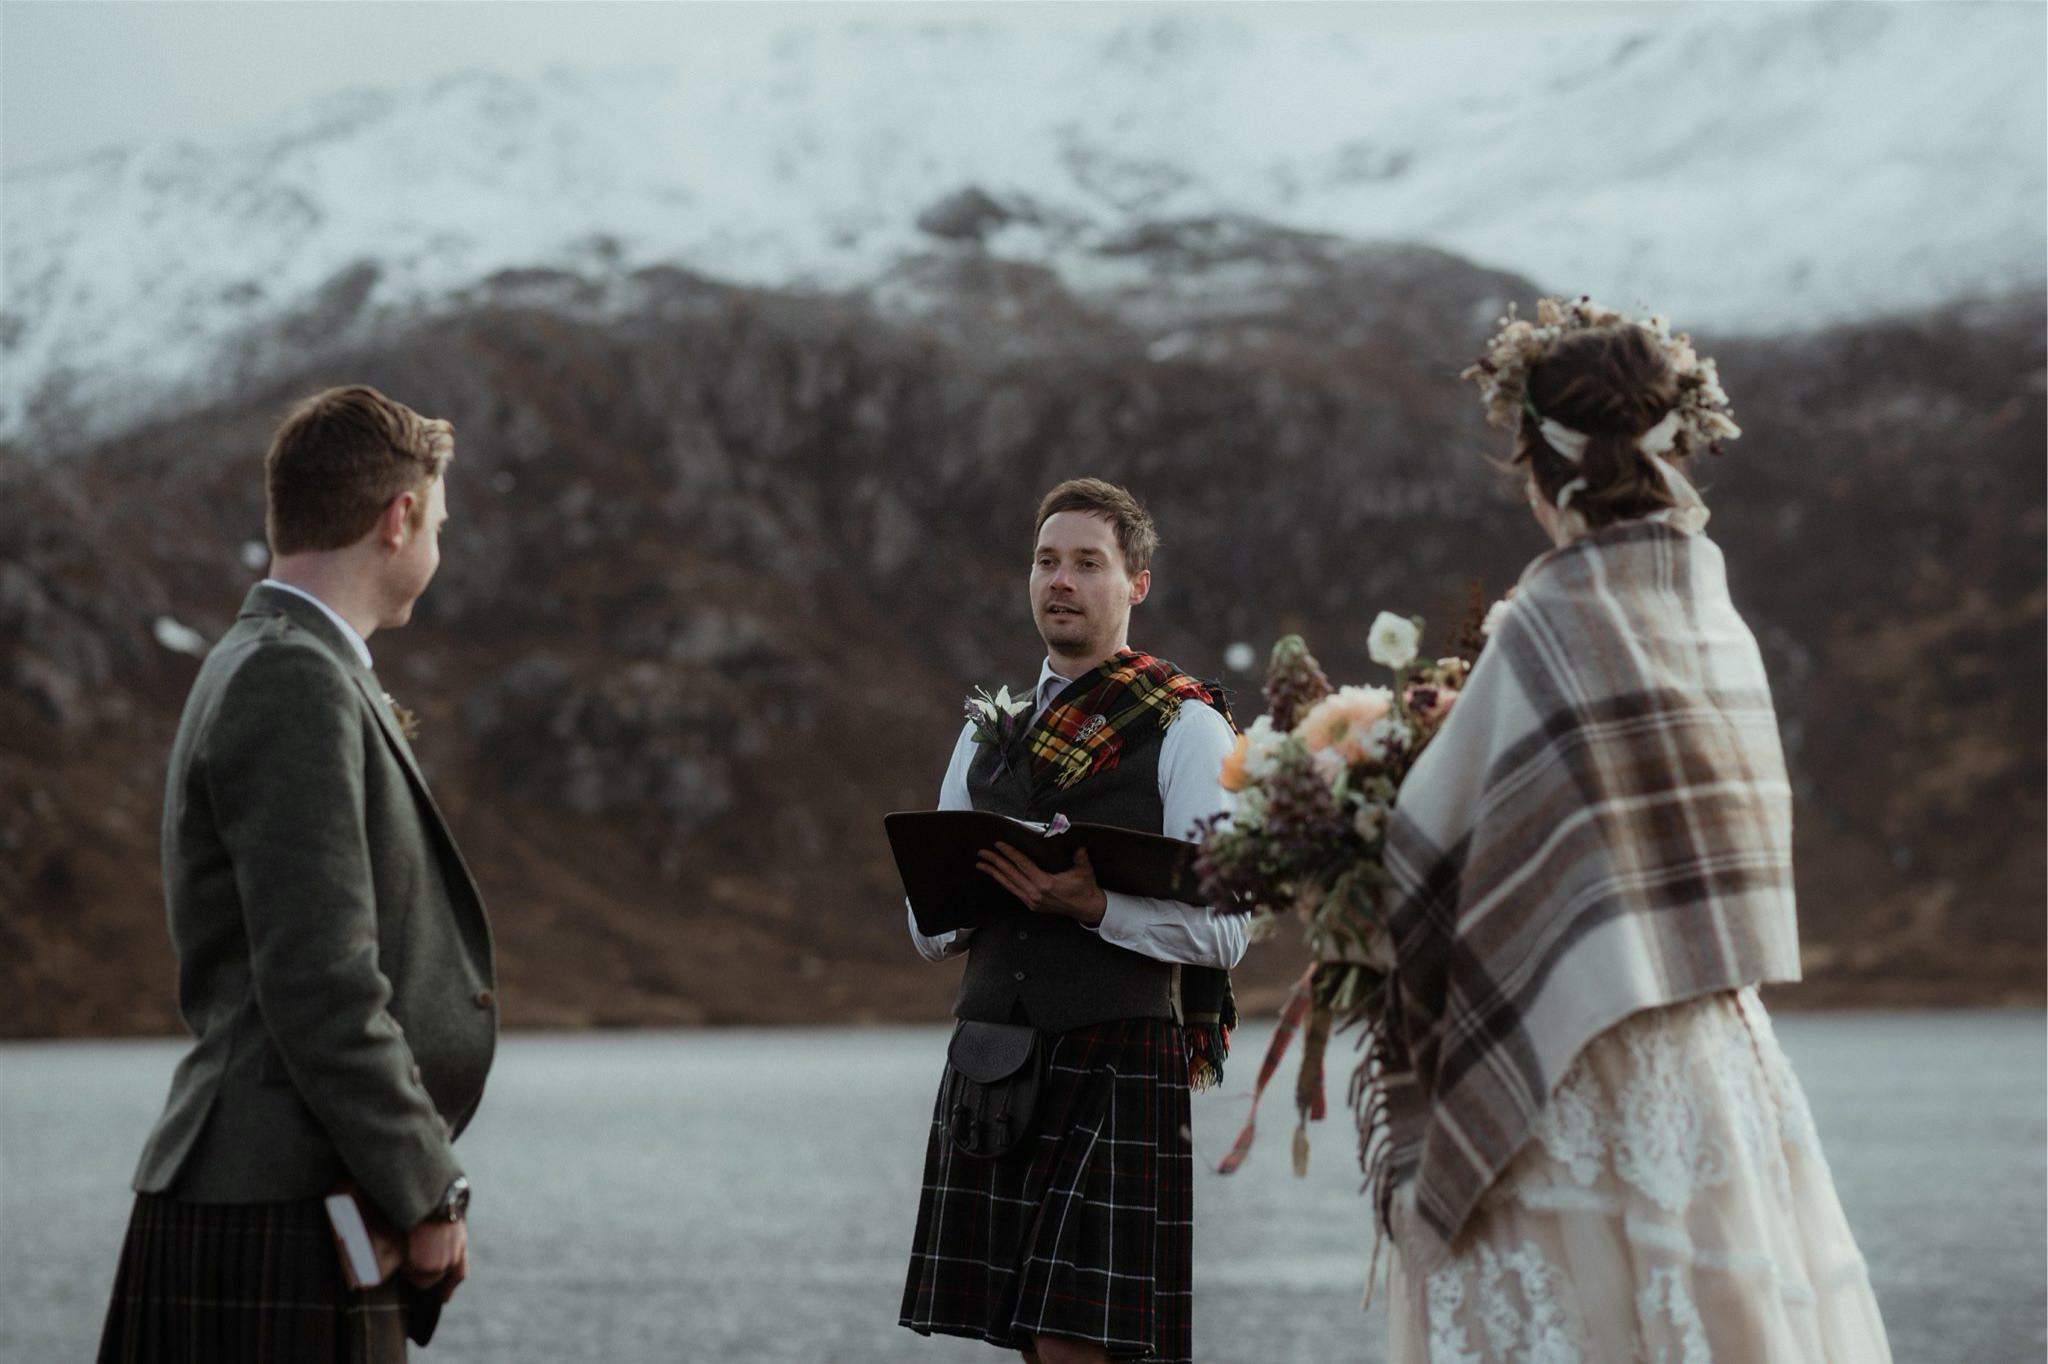 Bride, groom and celebrant with mountain backdrop at an elopement wedding in Assynt, Scotland